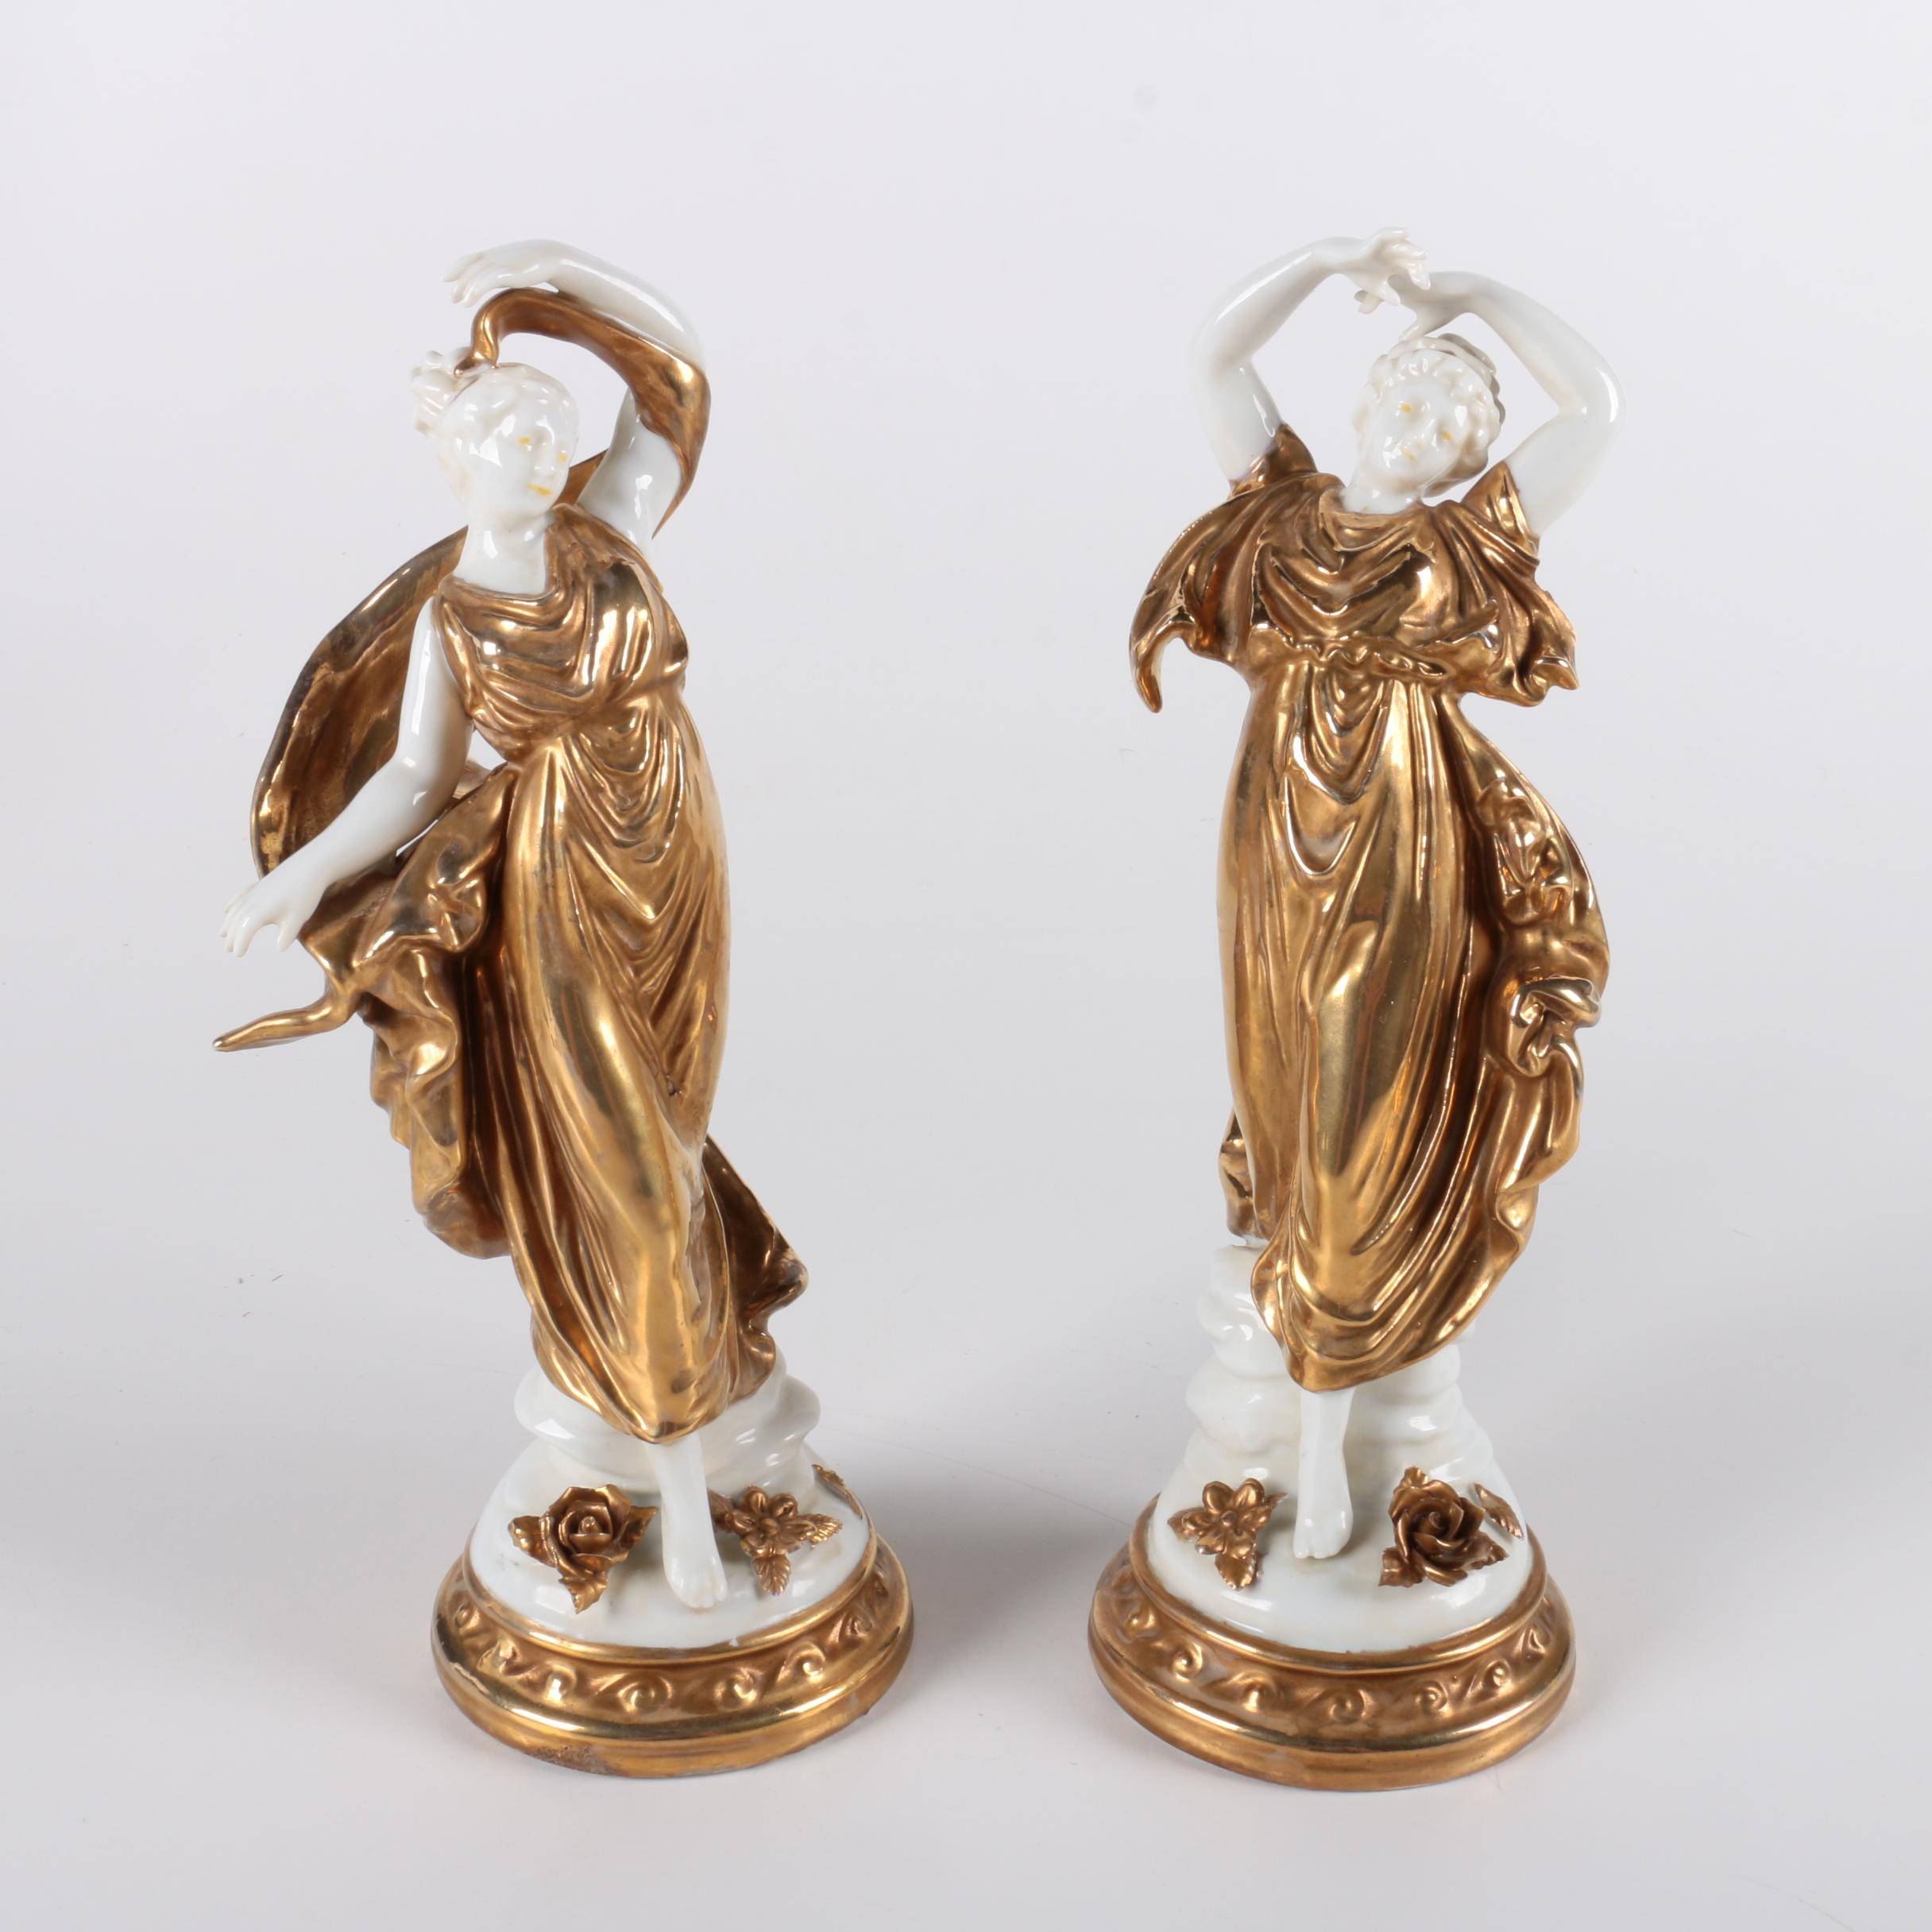 Pair of Porcelain Neo-Classical Figurines